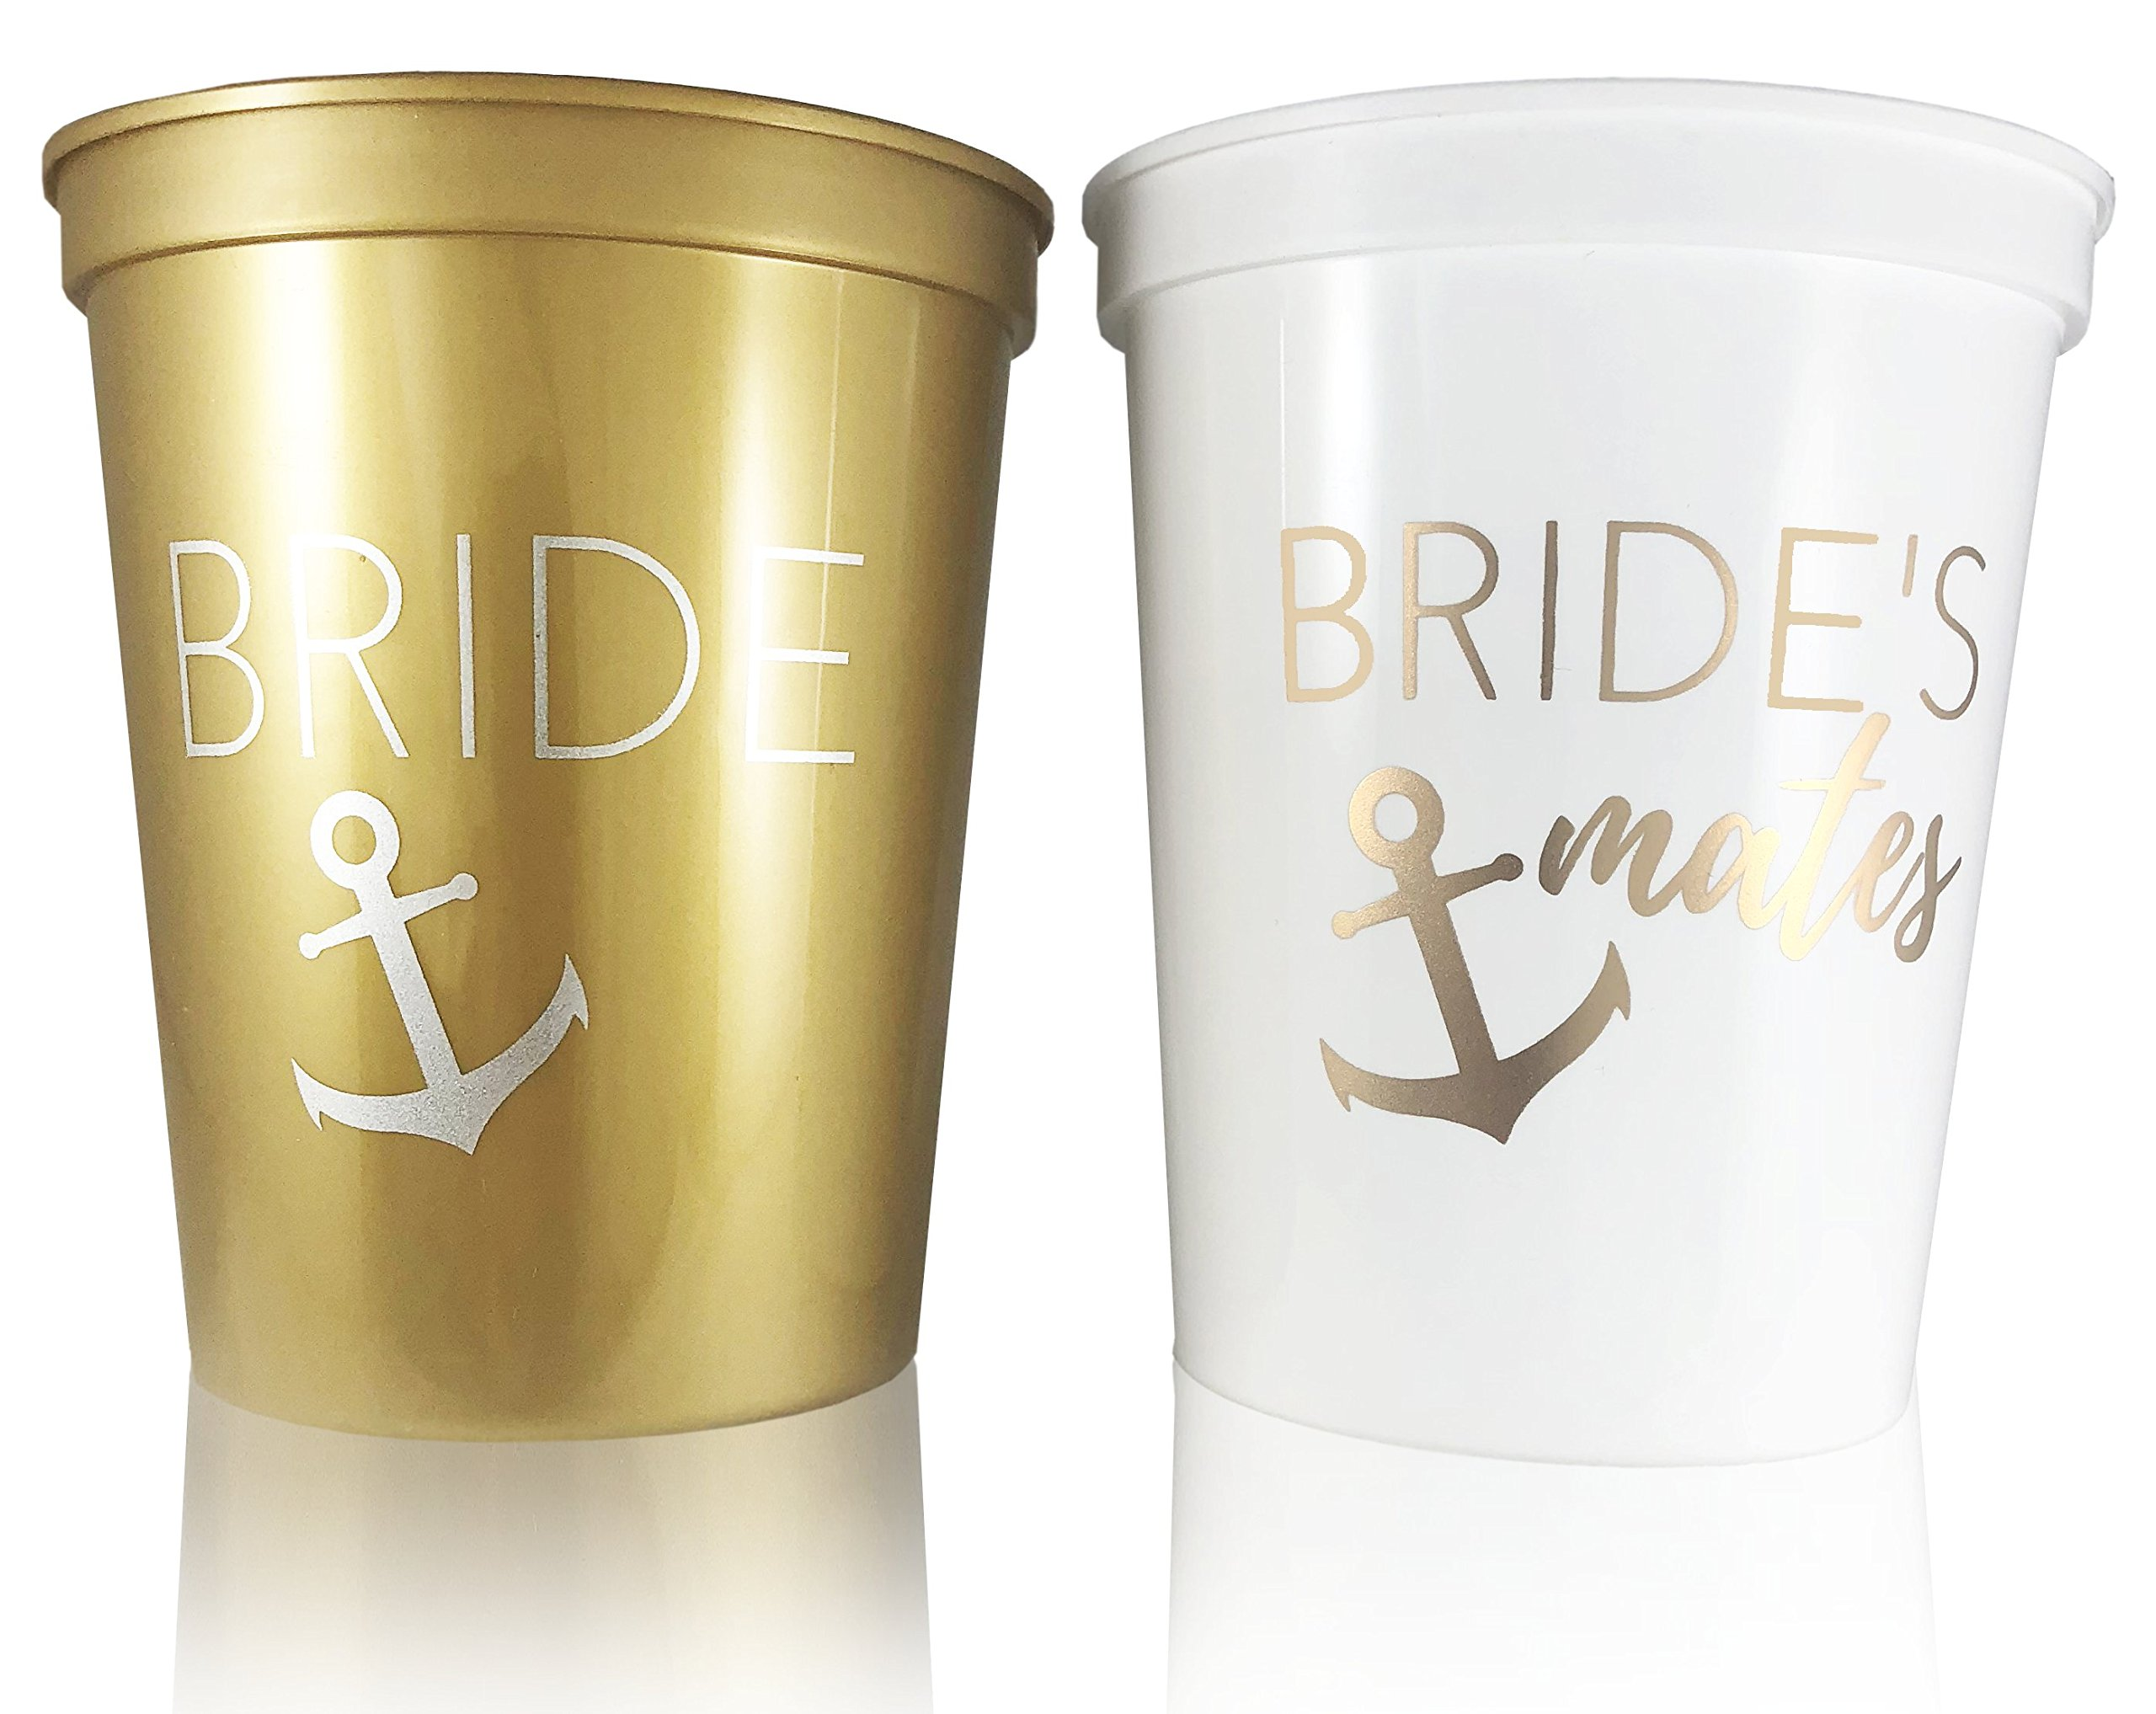 #glamist Nautical Theme Bridal Shower Cups - White & Gold 16 oz Plastic Cup Set for Weddings, Bridal Showers, Engagement & Bachelorette Parties. Get Nauti!